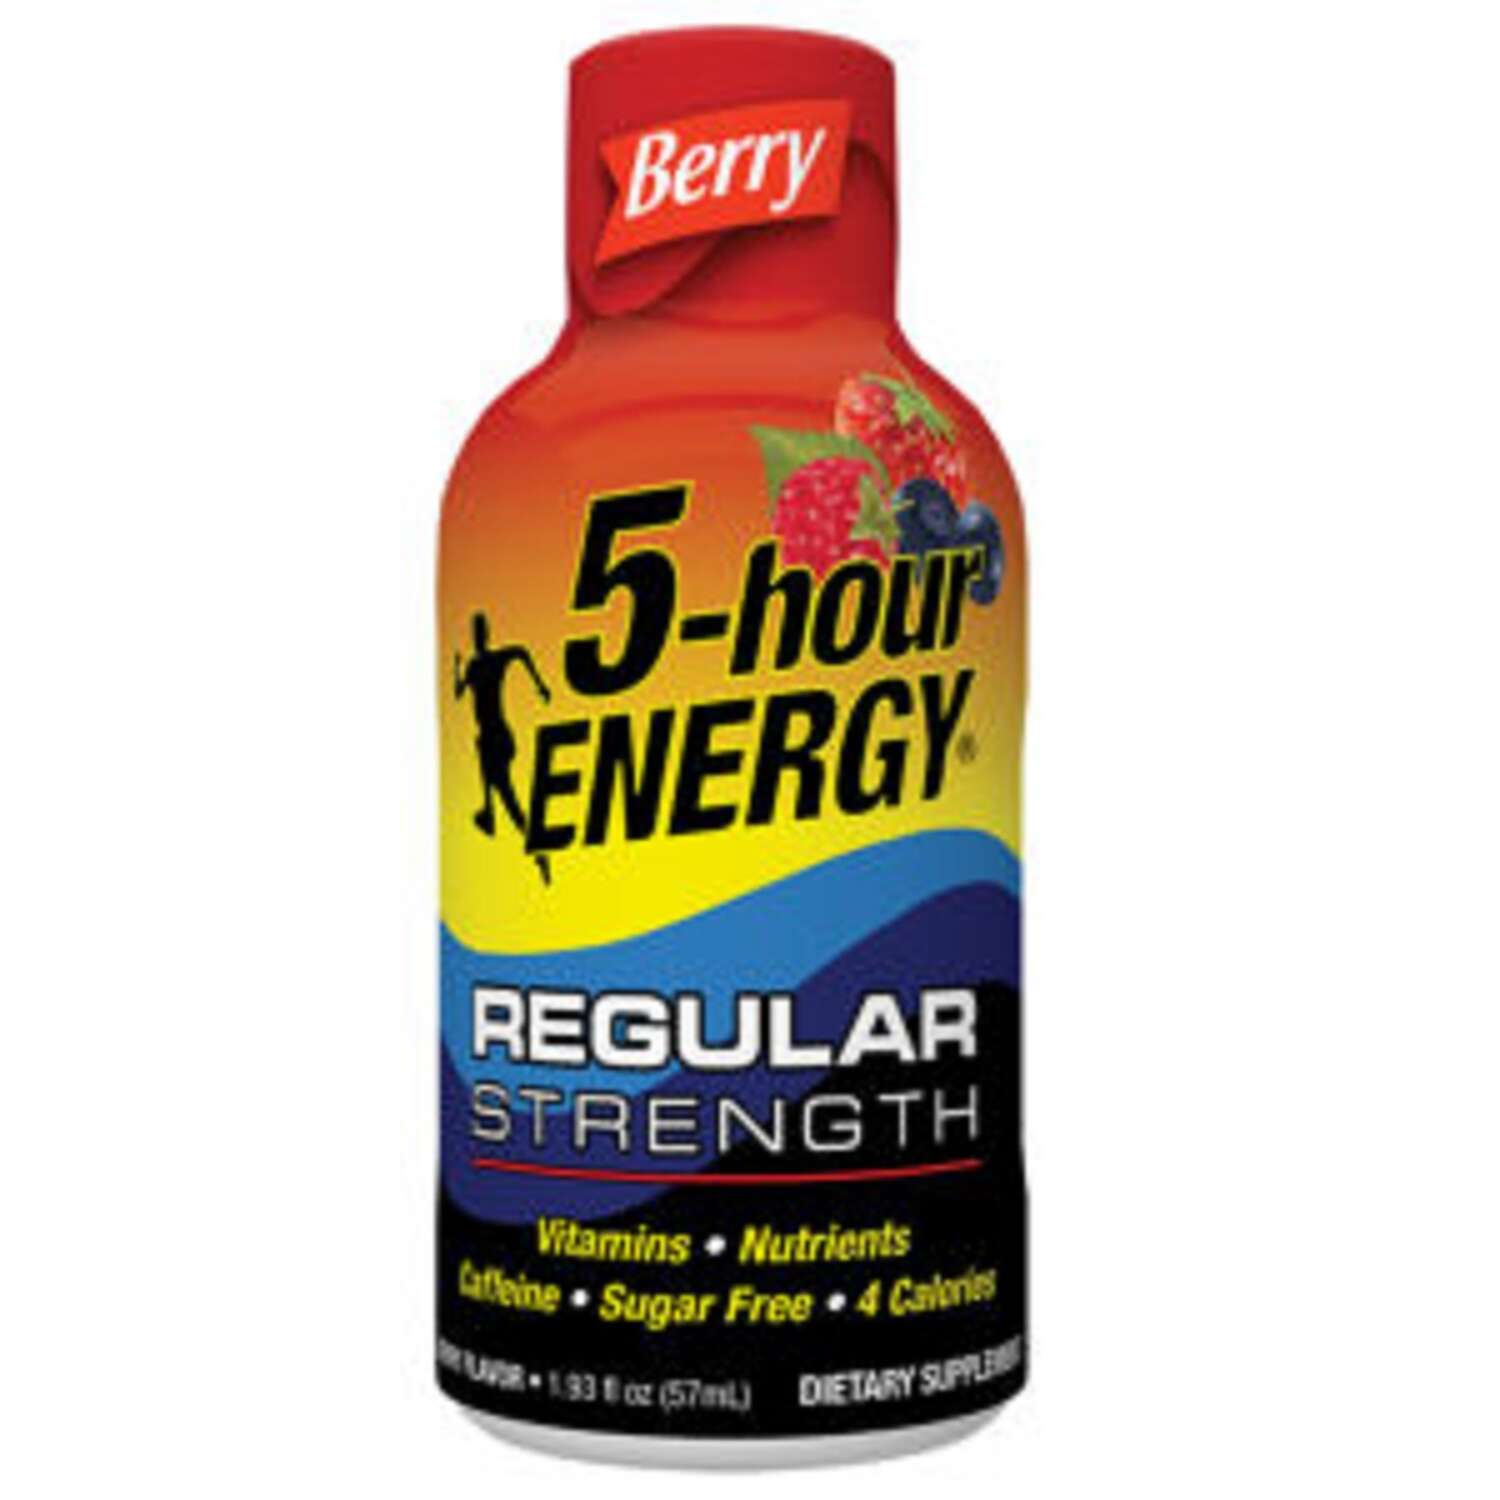 5-Hour Energy  RegularStrength  Sugar Free Berry  Energy Shot  1.93 oz.